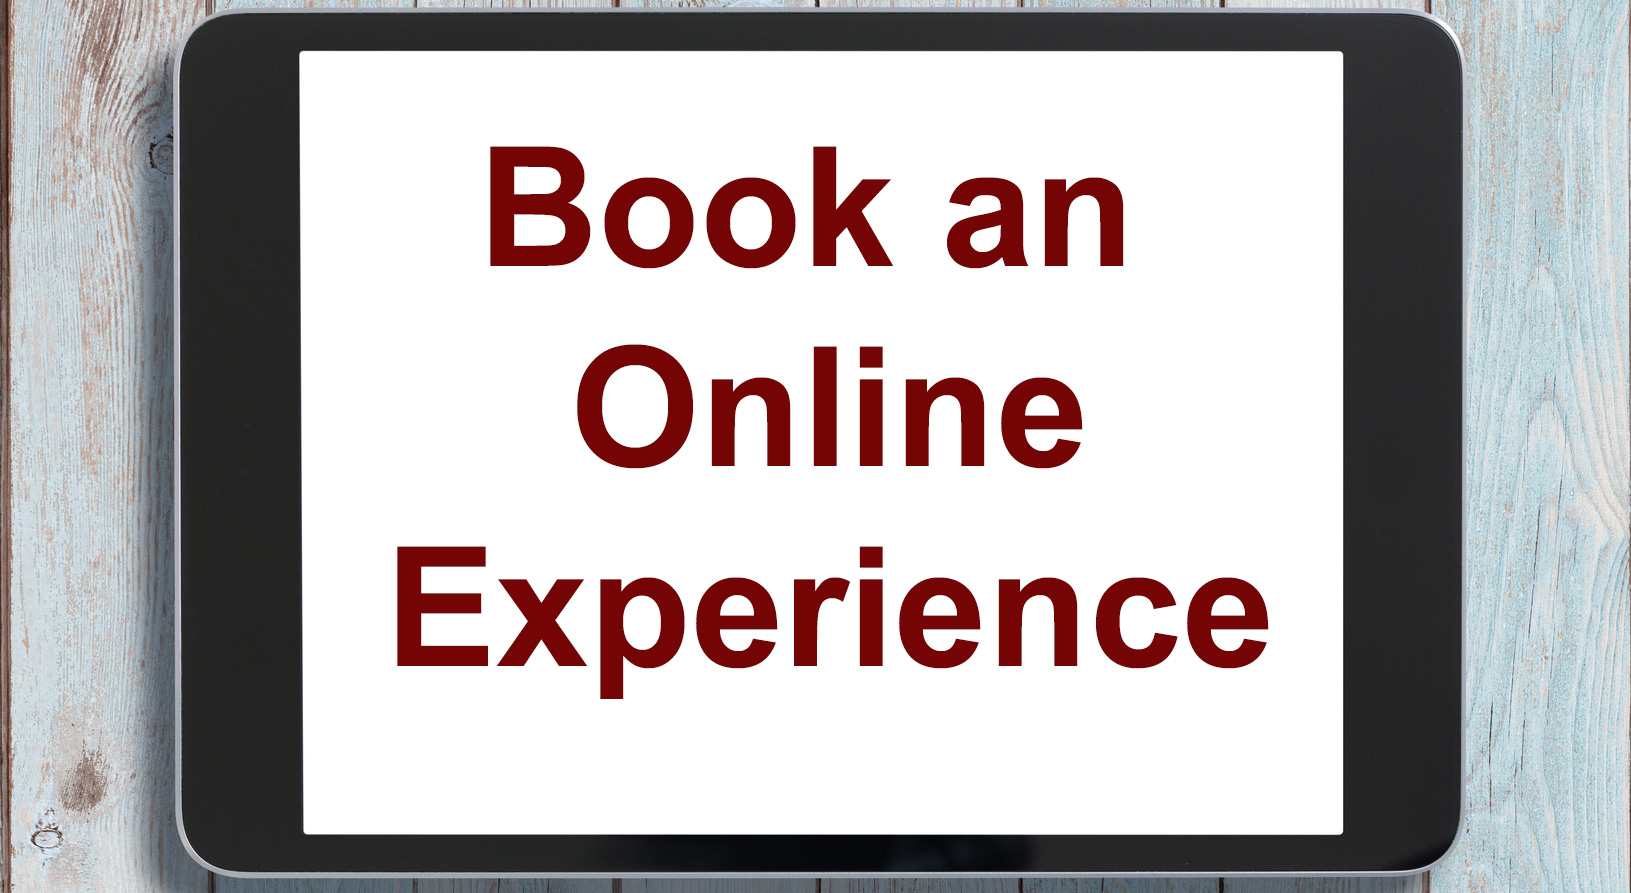 Online Experience